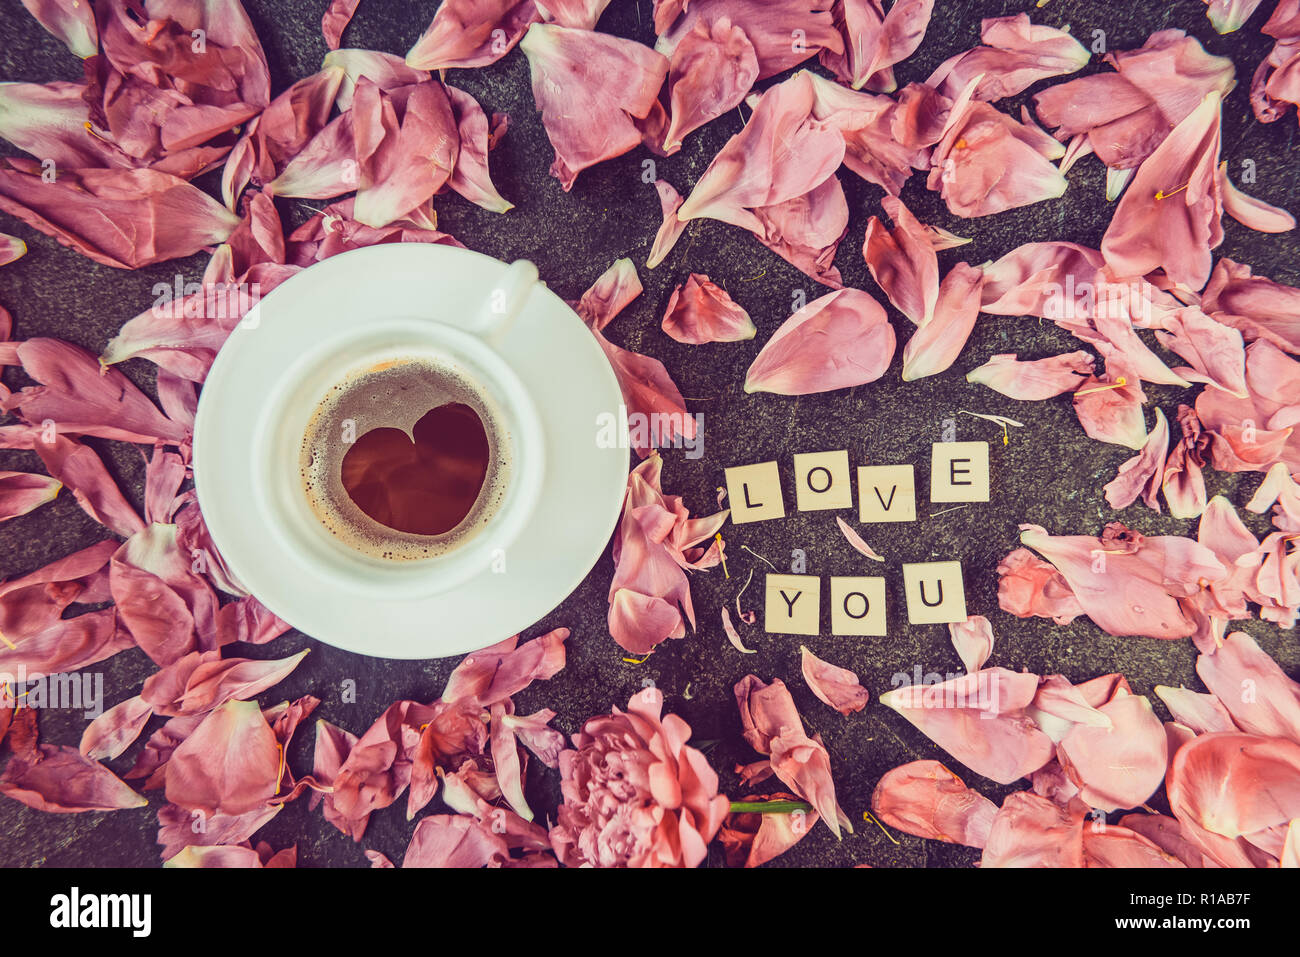 Flatlay cup of coffee with heart shape pattern and message I love you spelled in wooden blocks with pink peony flower petals on dark background. Valen Stock Photo